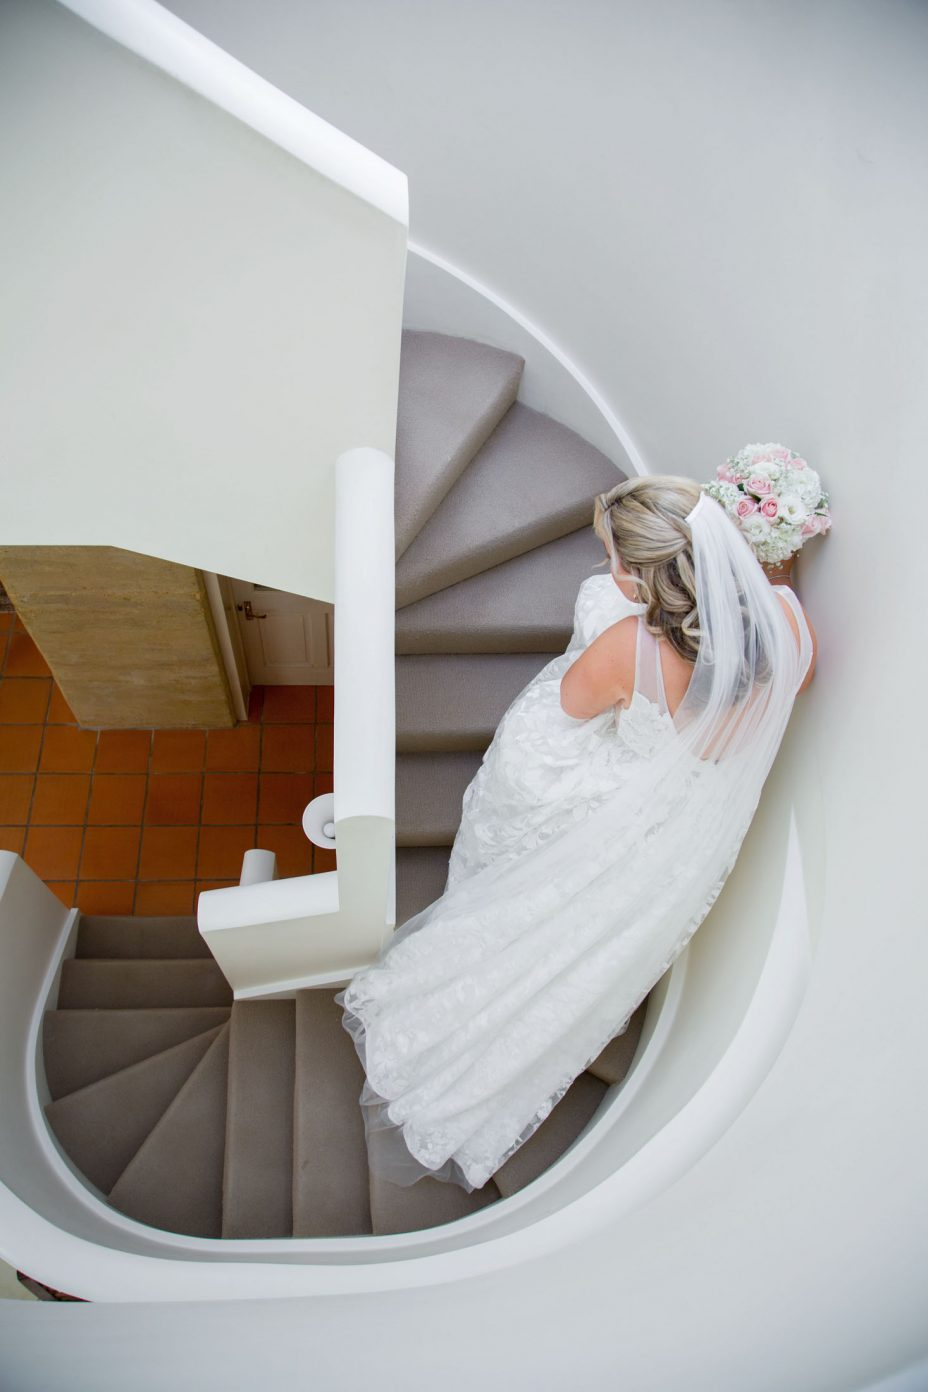 Bride in wedding dress walking down curved staircase